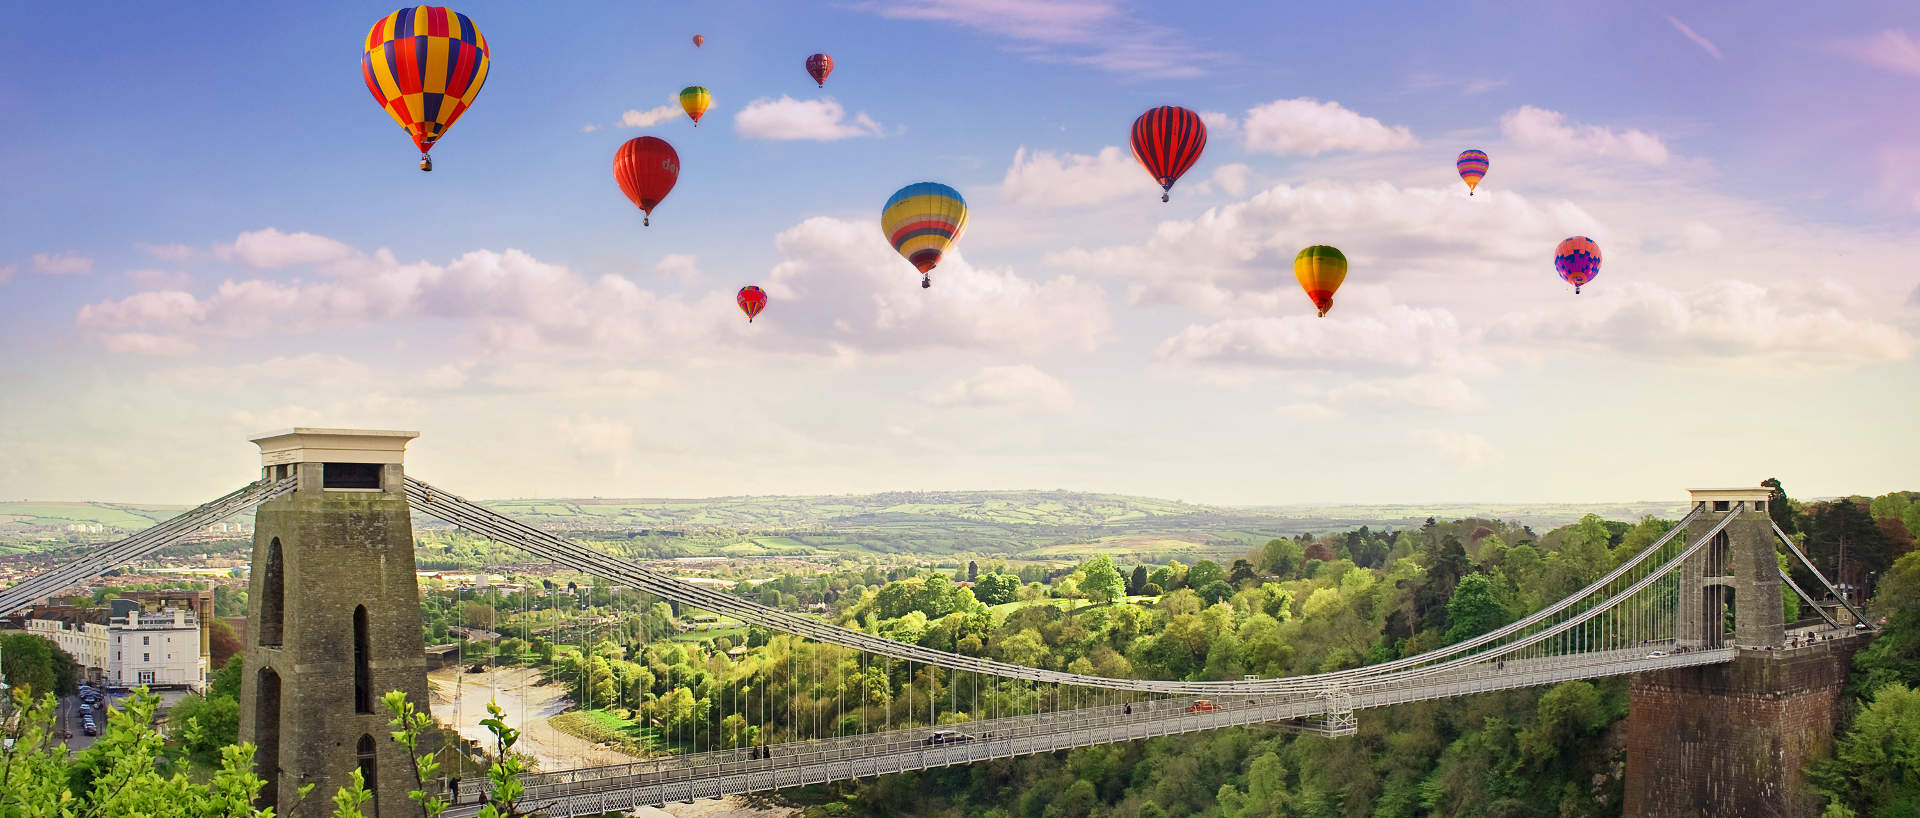 Hot air balloons flying over the Clifton Suspension Bridge